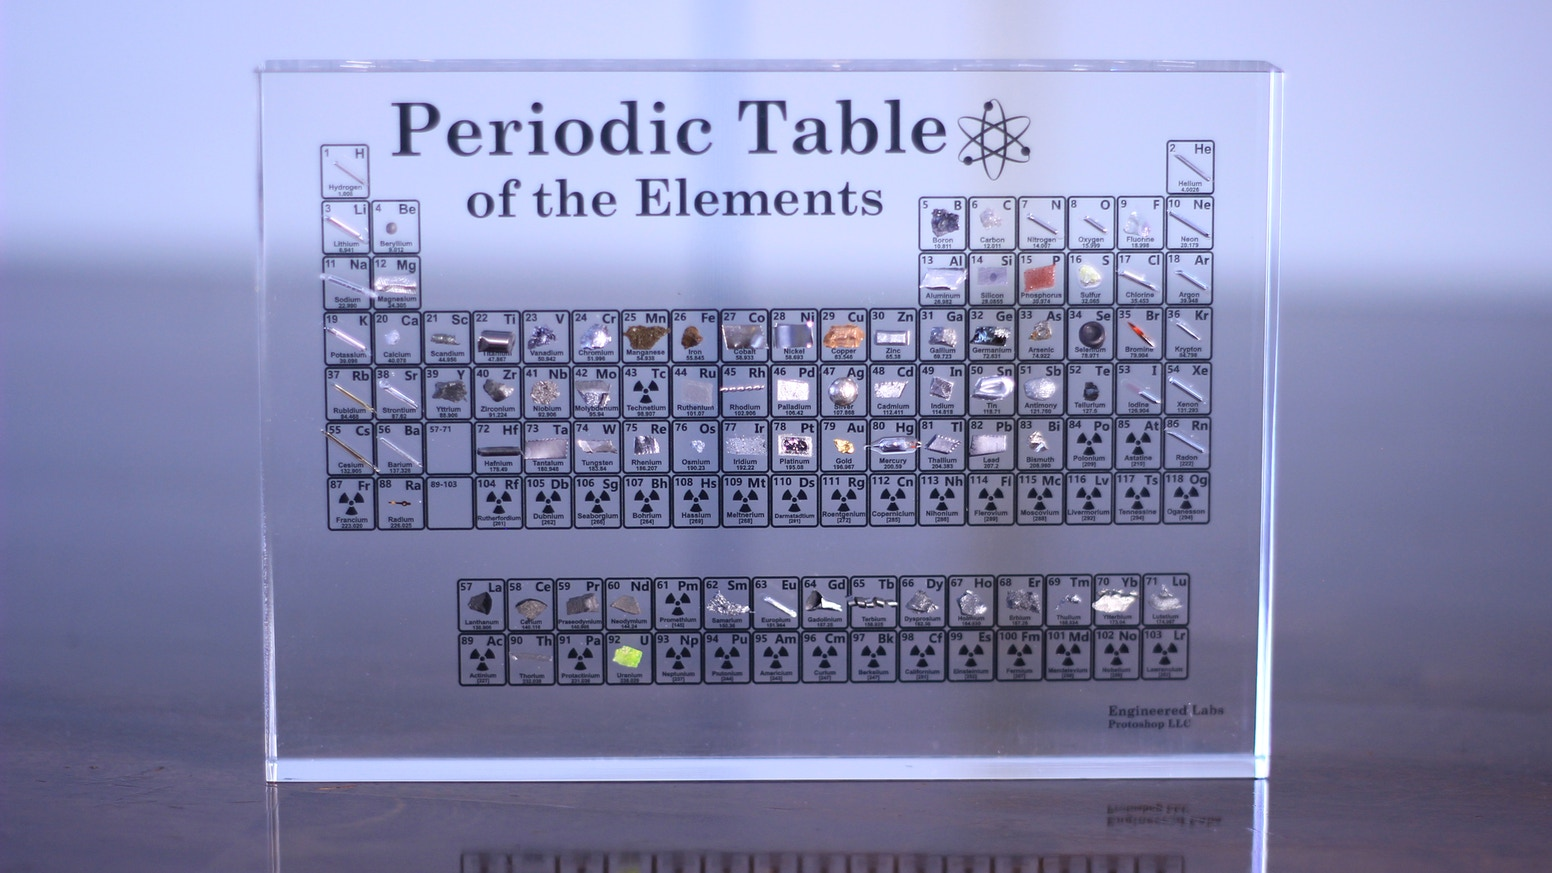 An elegant element collection in beautiful Lucite acrylic. For scientists, educators, and enthusiasts.